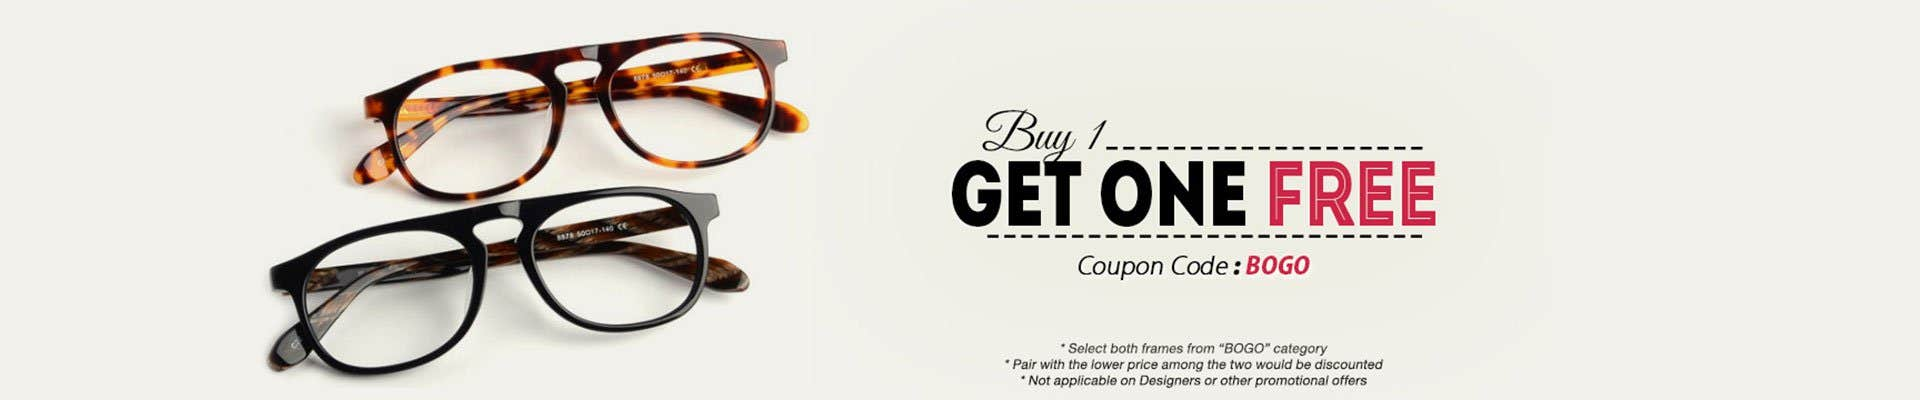 Buy one get one free eyeglasses